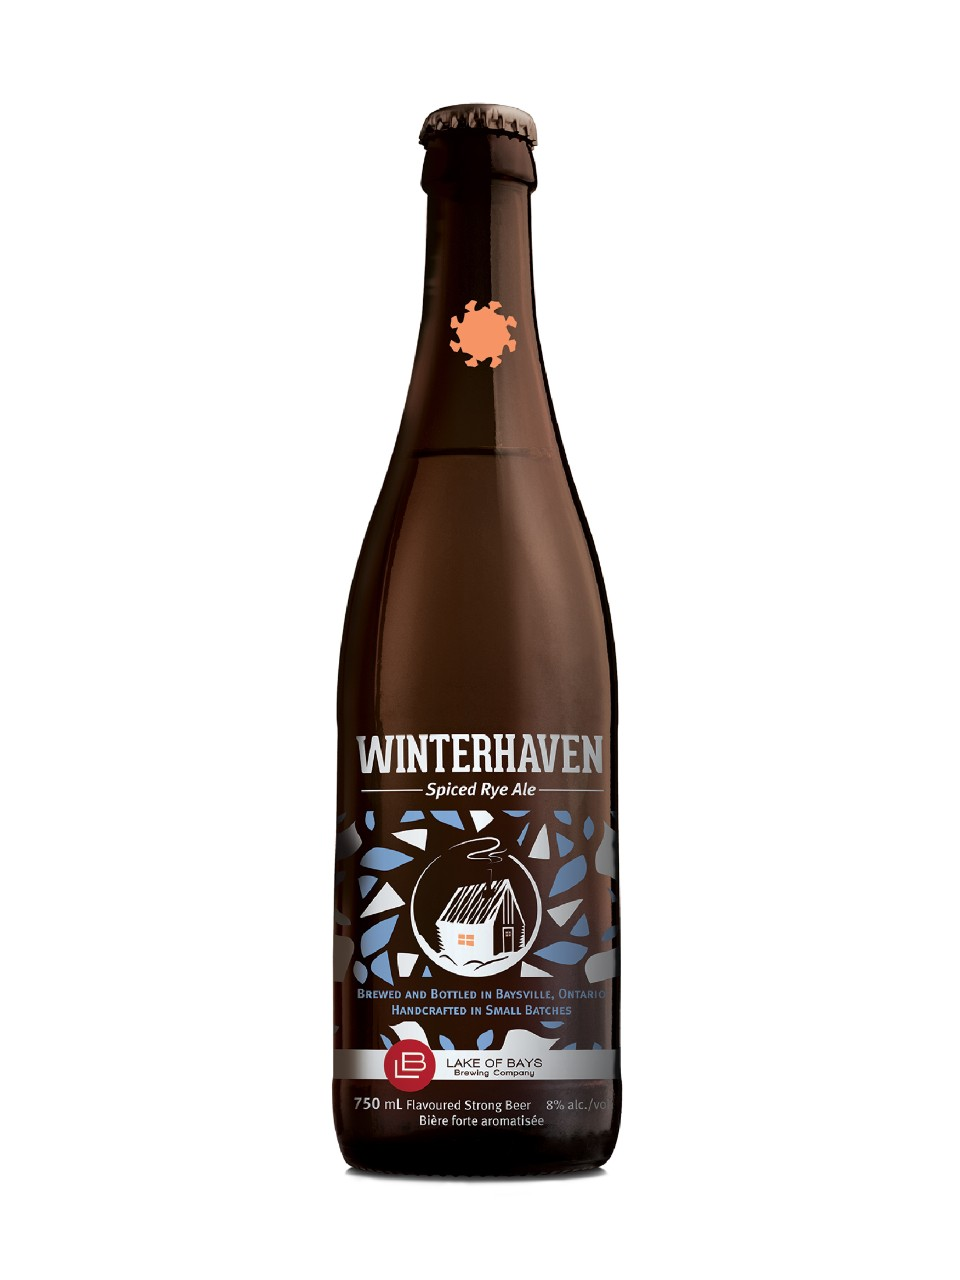 Lake of Bays Winterhaven Spiced Rye Ale